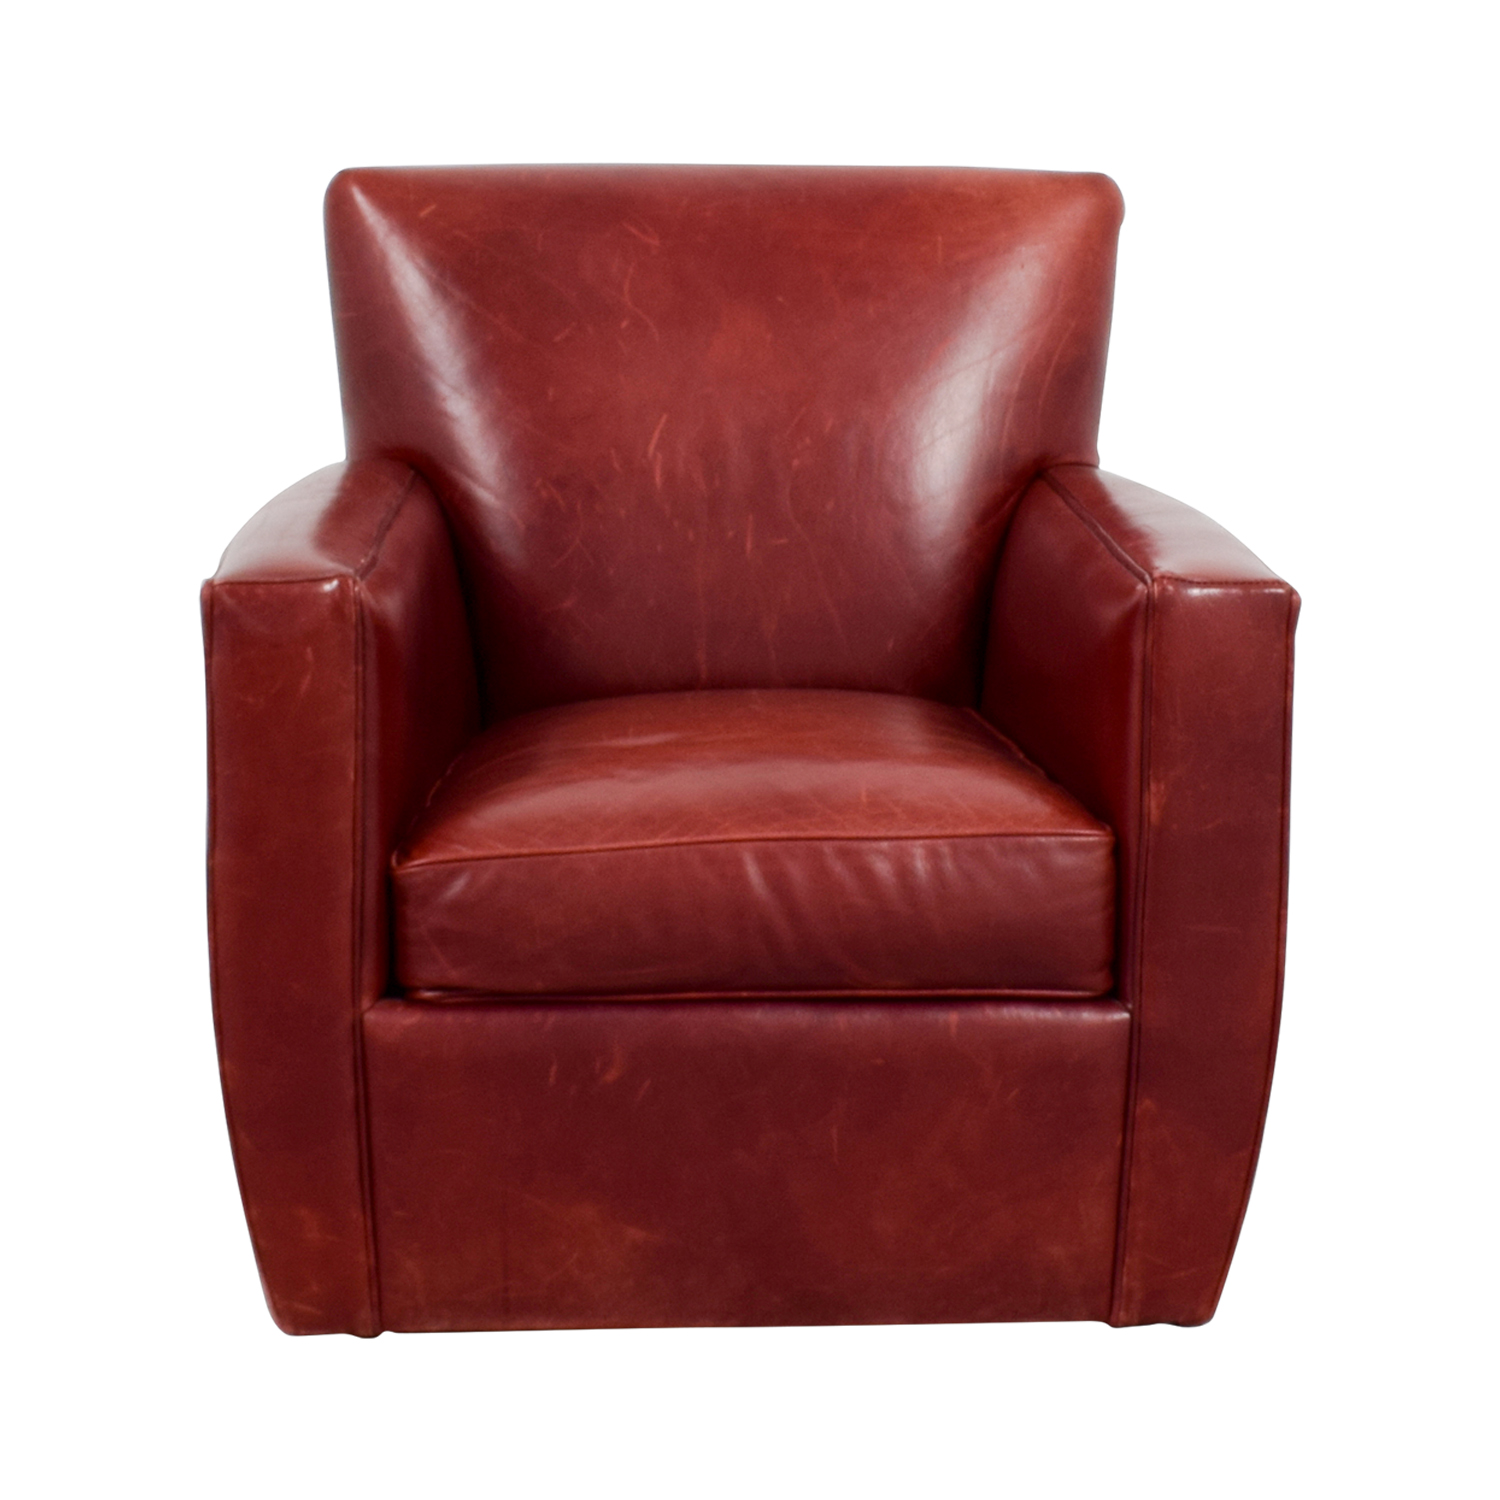 Crate & Barrel Crate & Barrel Leather Swivel Chair nyc